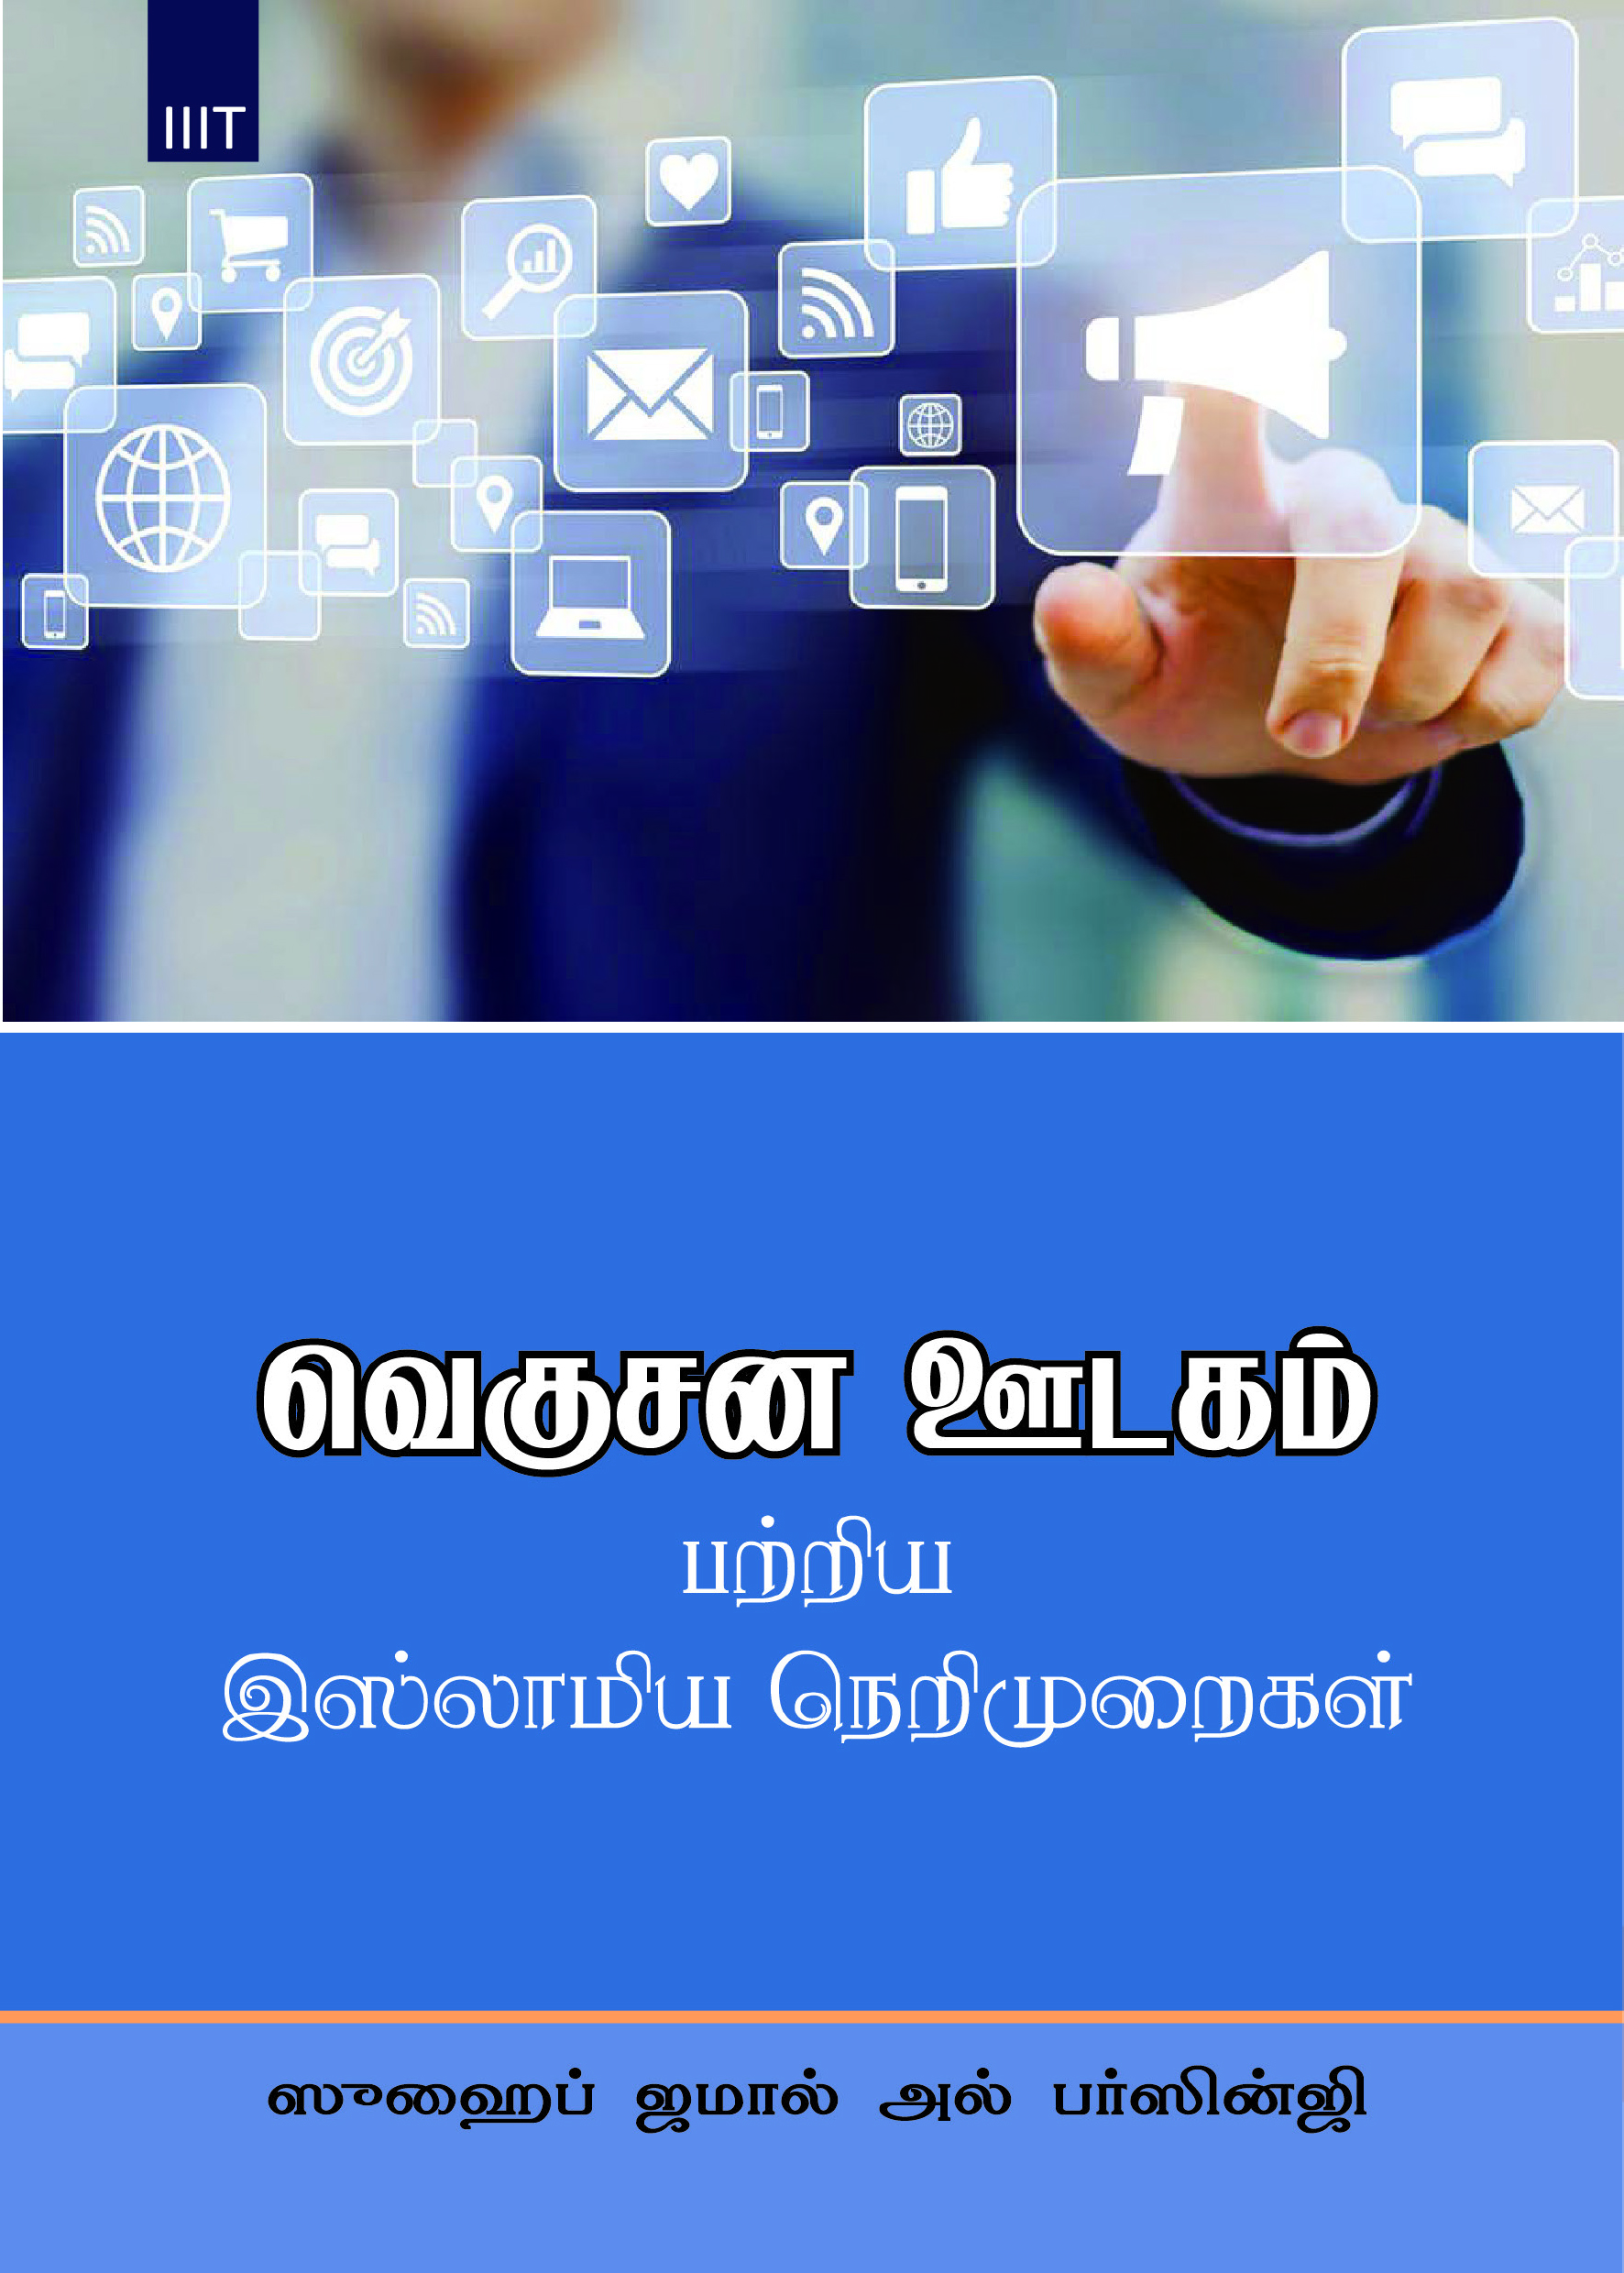 Tamil edition of 'Working Principles for an Islamic Model in Mass Media Communication' by Br. Suhaib Jamal alBarzinji